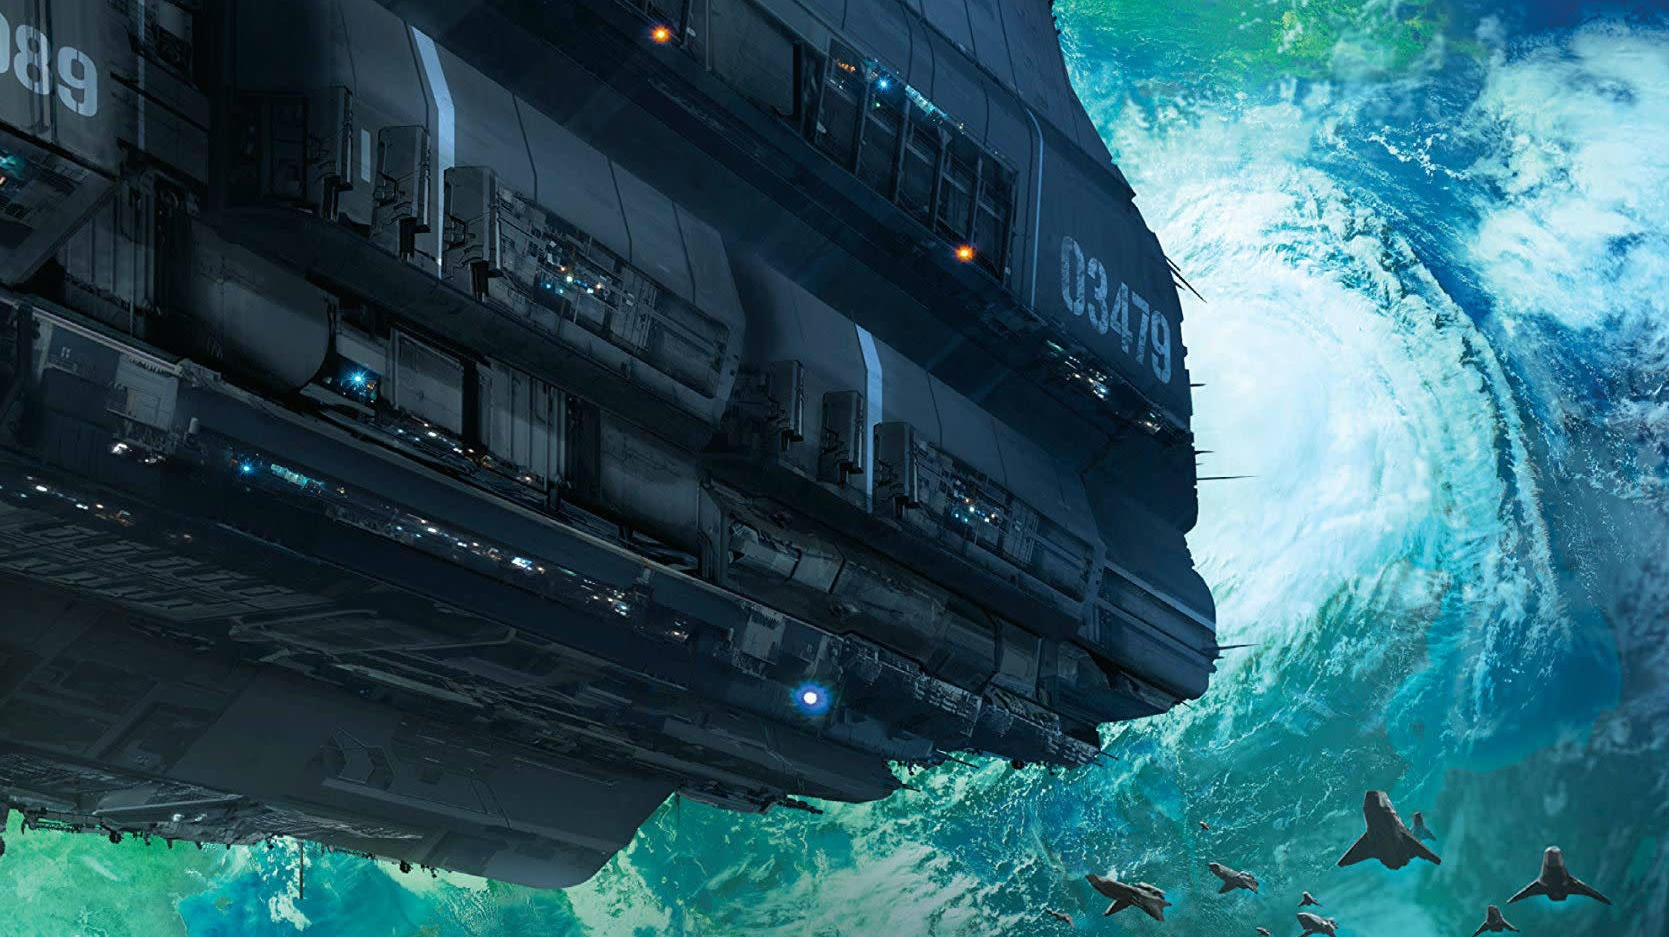 There Are Tons Of New Sci-Fi And Fantasy Books Coming To Brighten Up August